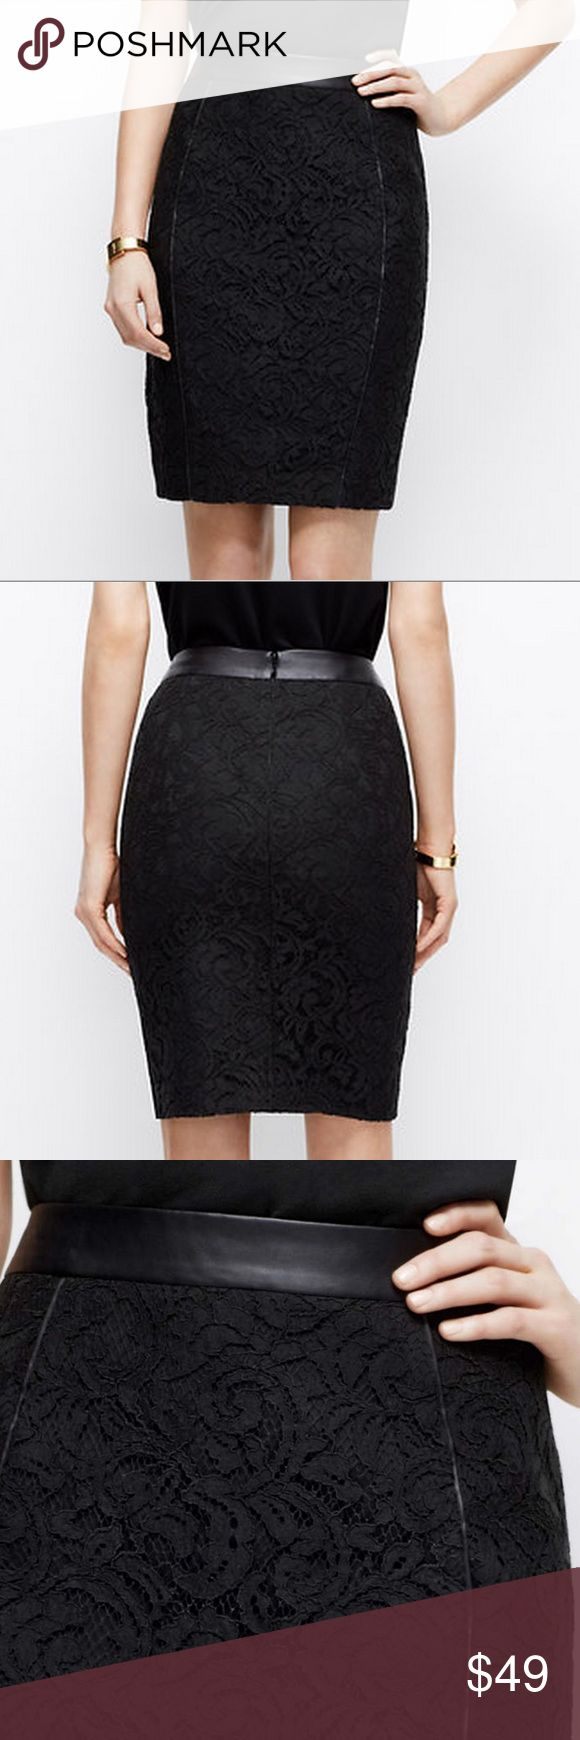 Black Leather and Lace Pencil Skirt Black Leather and Lace Pencil Skirt - Smooth and slimming black pencil skirt with stretch, lace overlay and leather trim details - New and rarely worn  - Size 4 Skirts Pencil